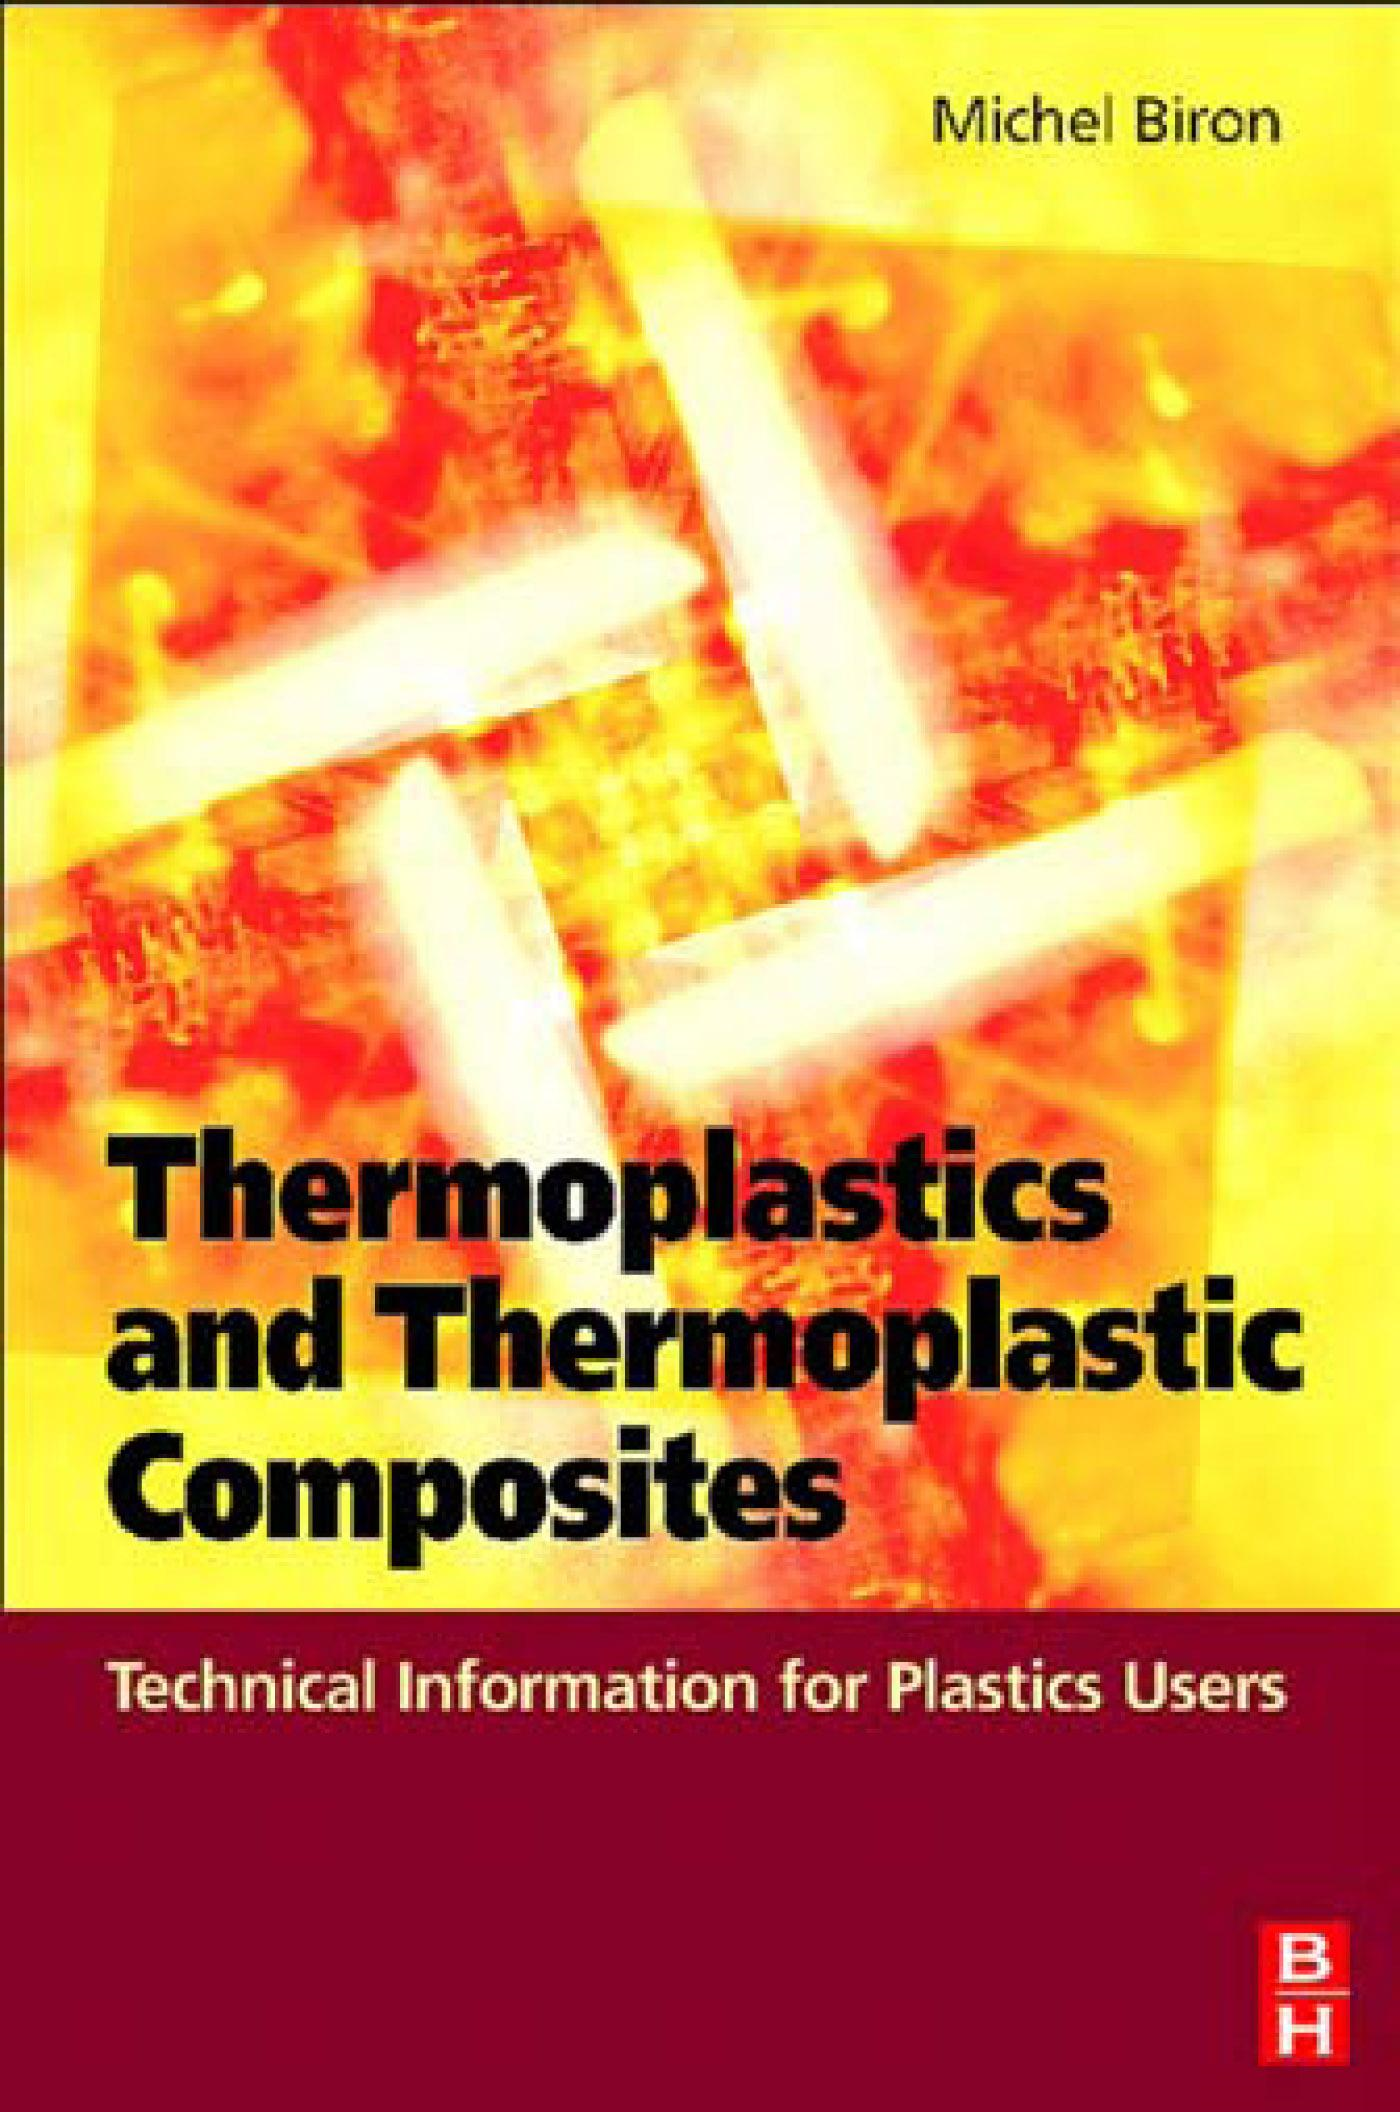 Thermoplastics and Thermoplastic Composites: Technical Information for Plastics Users